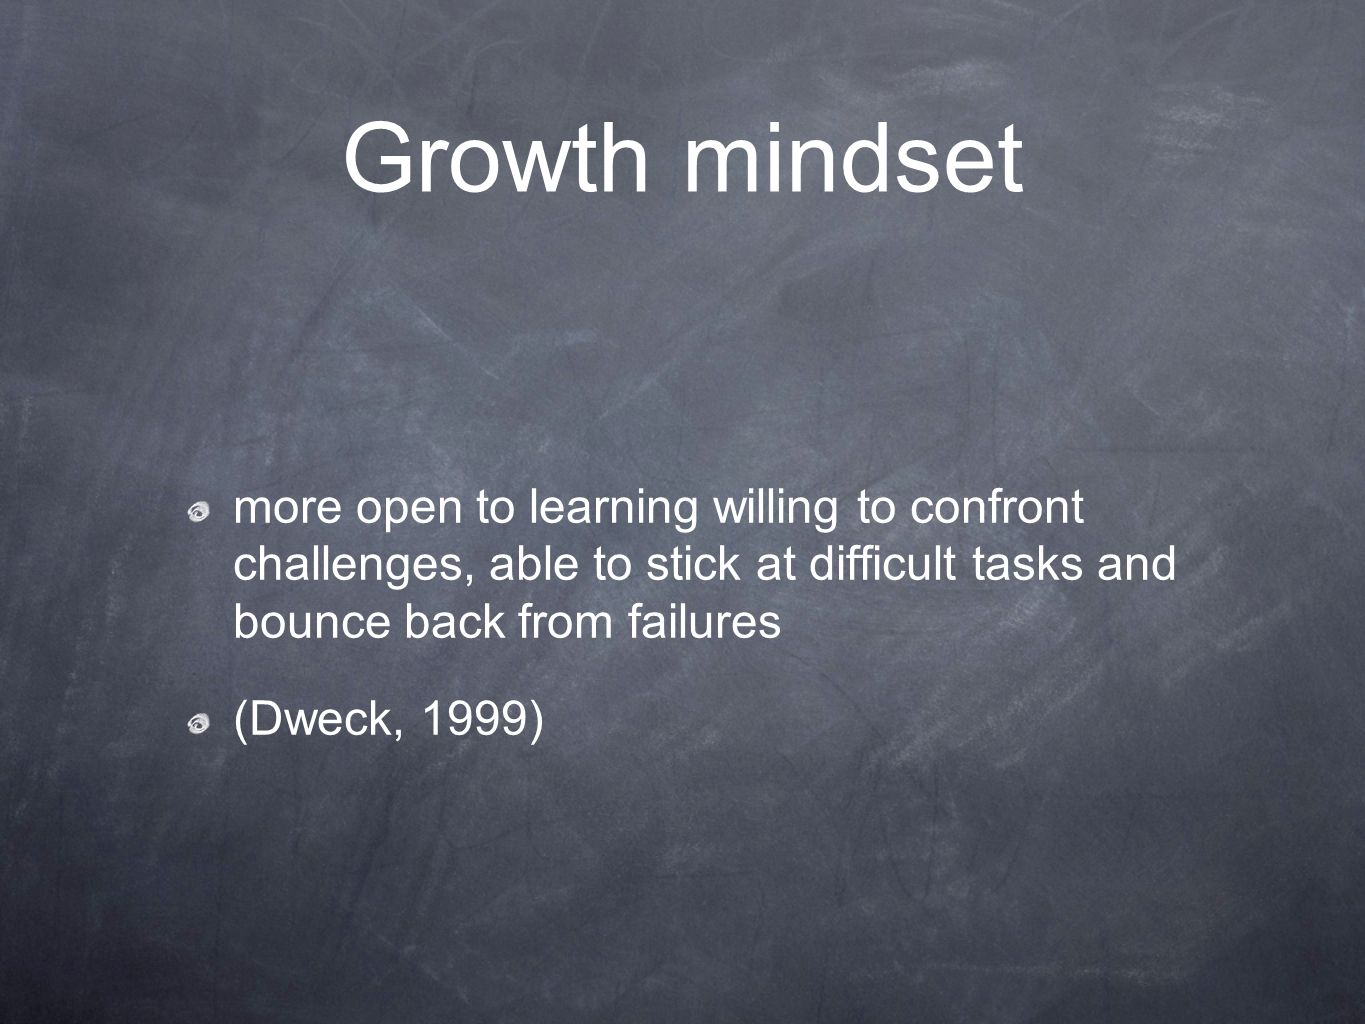 Growth mindset more open to learning willing to confront challenges, able to stick at difficult tasks and bounce back from failures (Dweck, 1999)